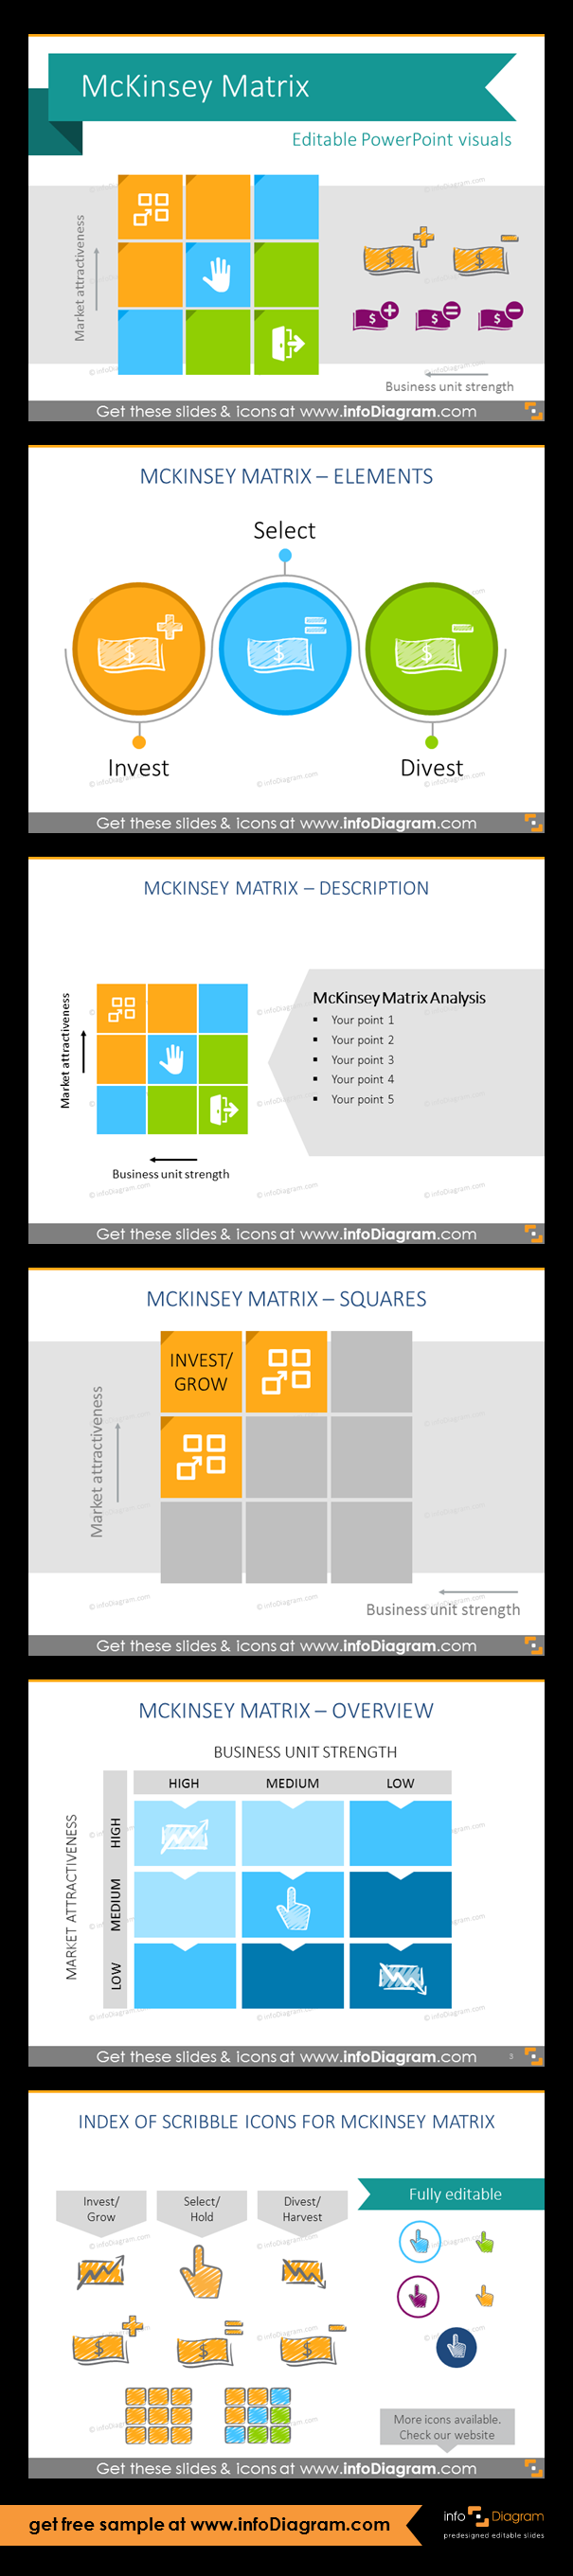 Mckinsey matrix framework diagram ppt template strategy and collection of mckinsey matrix so called ge matrix visual layouts as pre designed ccuart Image collections